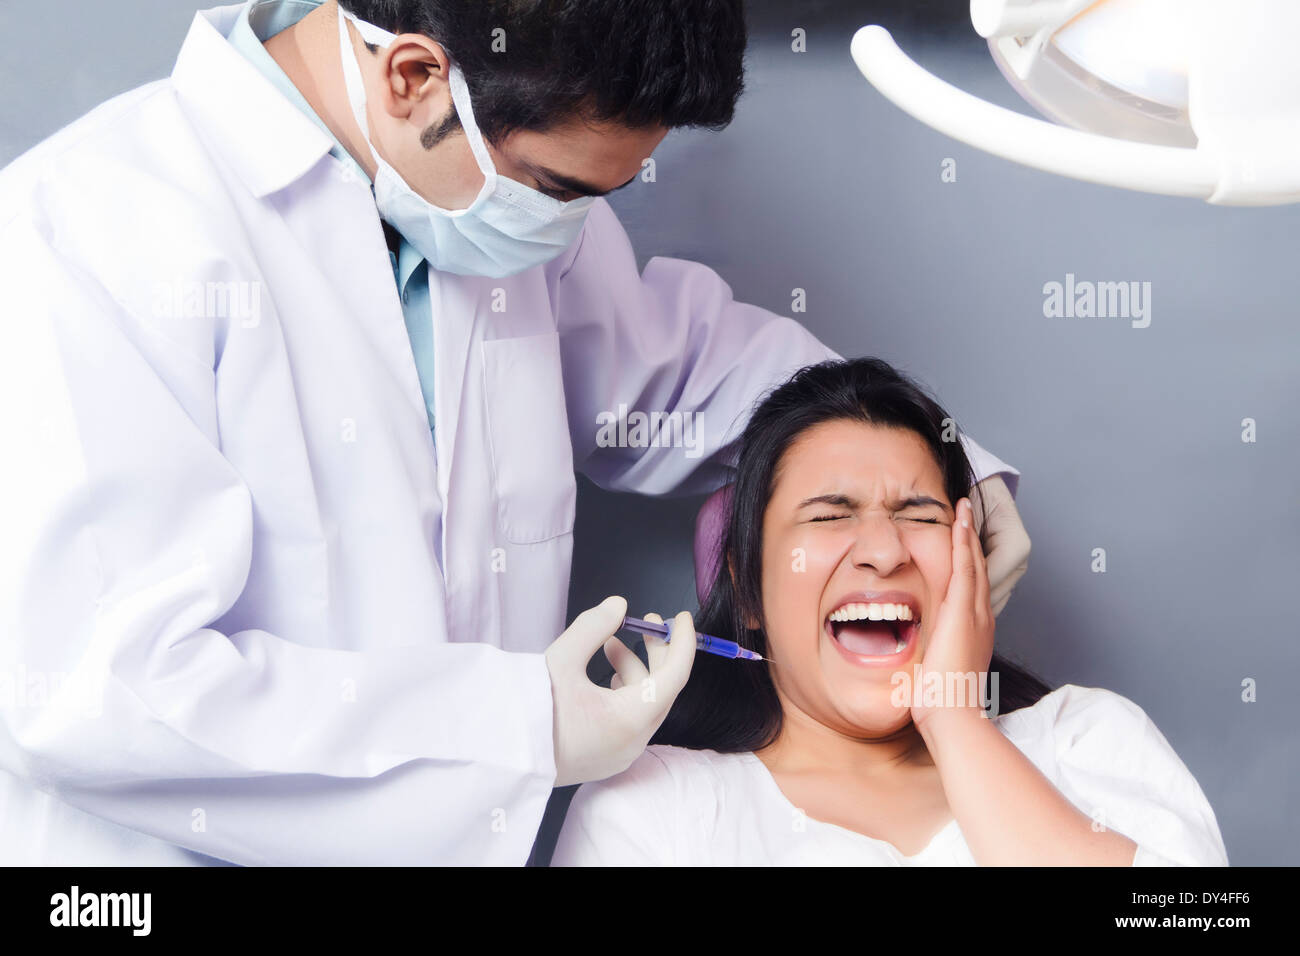 Indian Dentist Treatment Stock Photo 68326810 Alamy